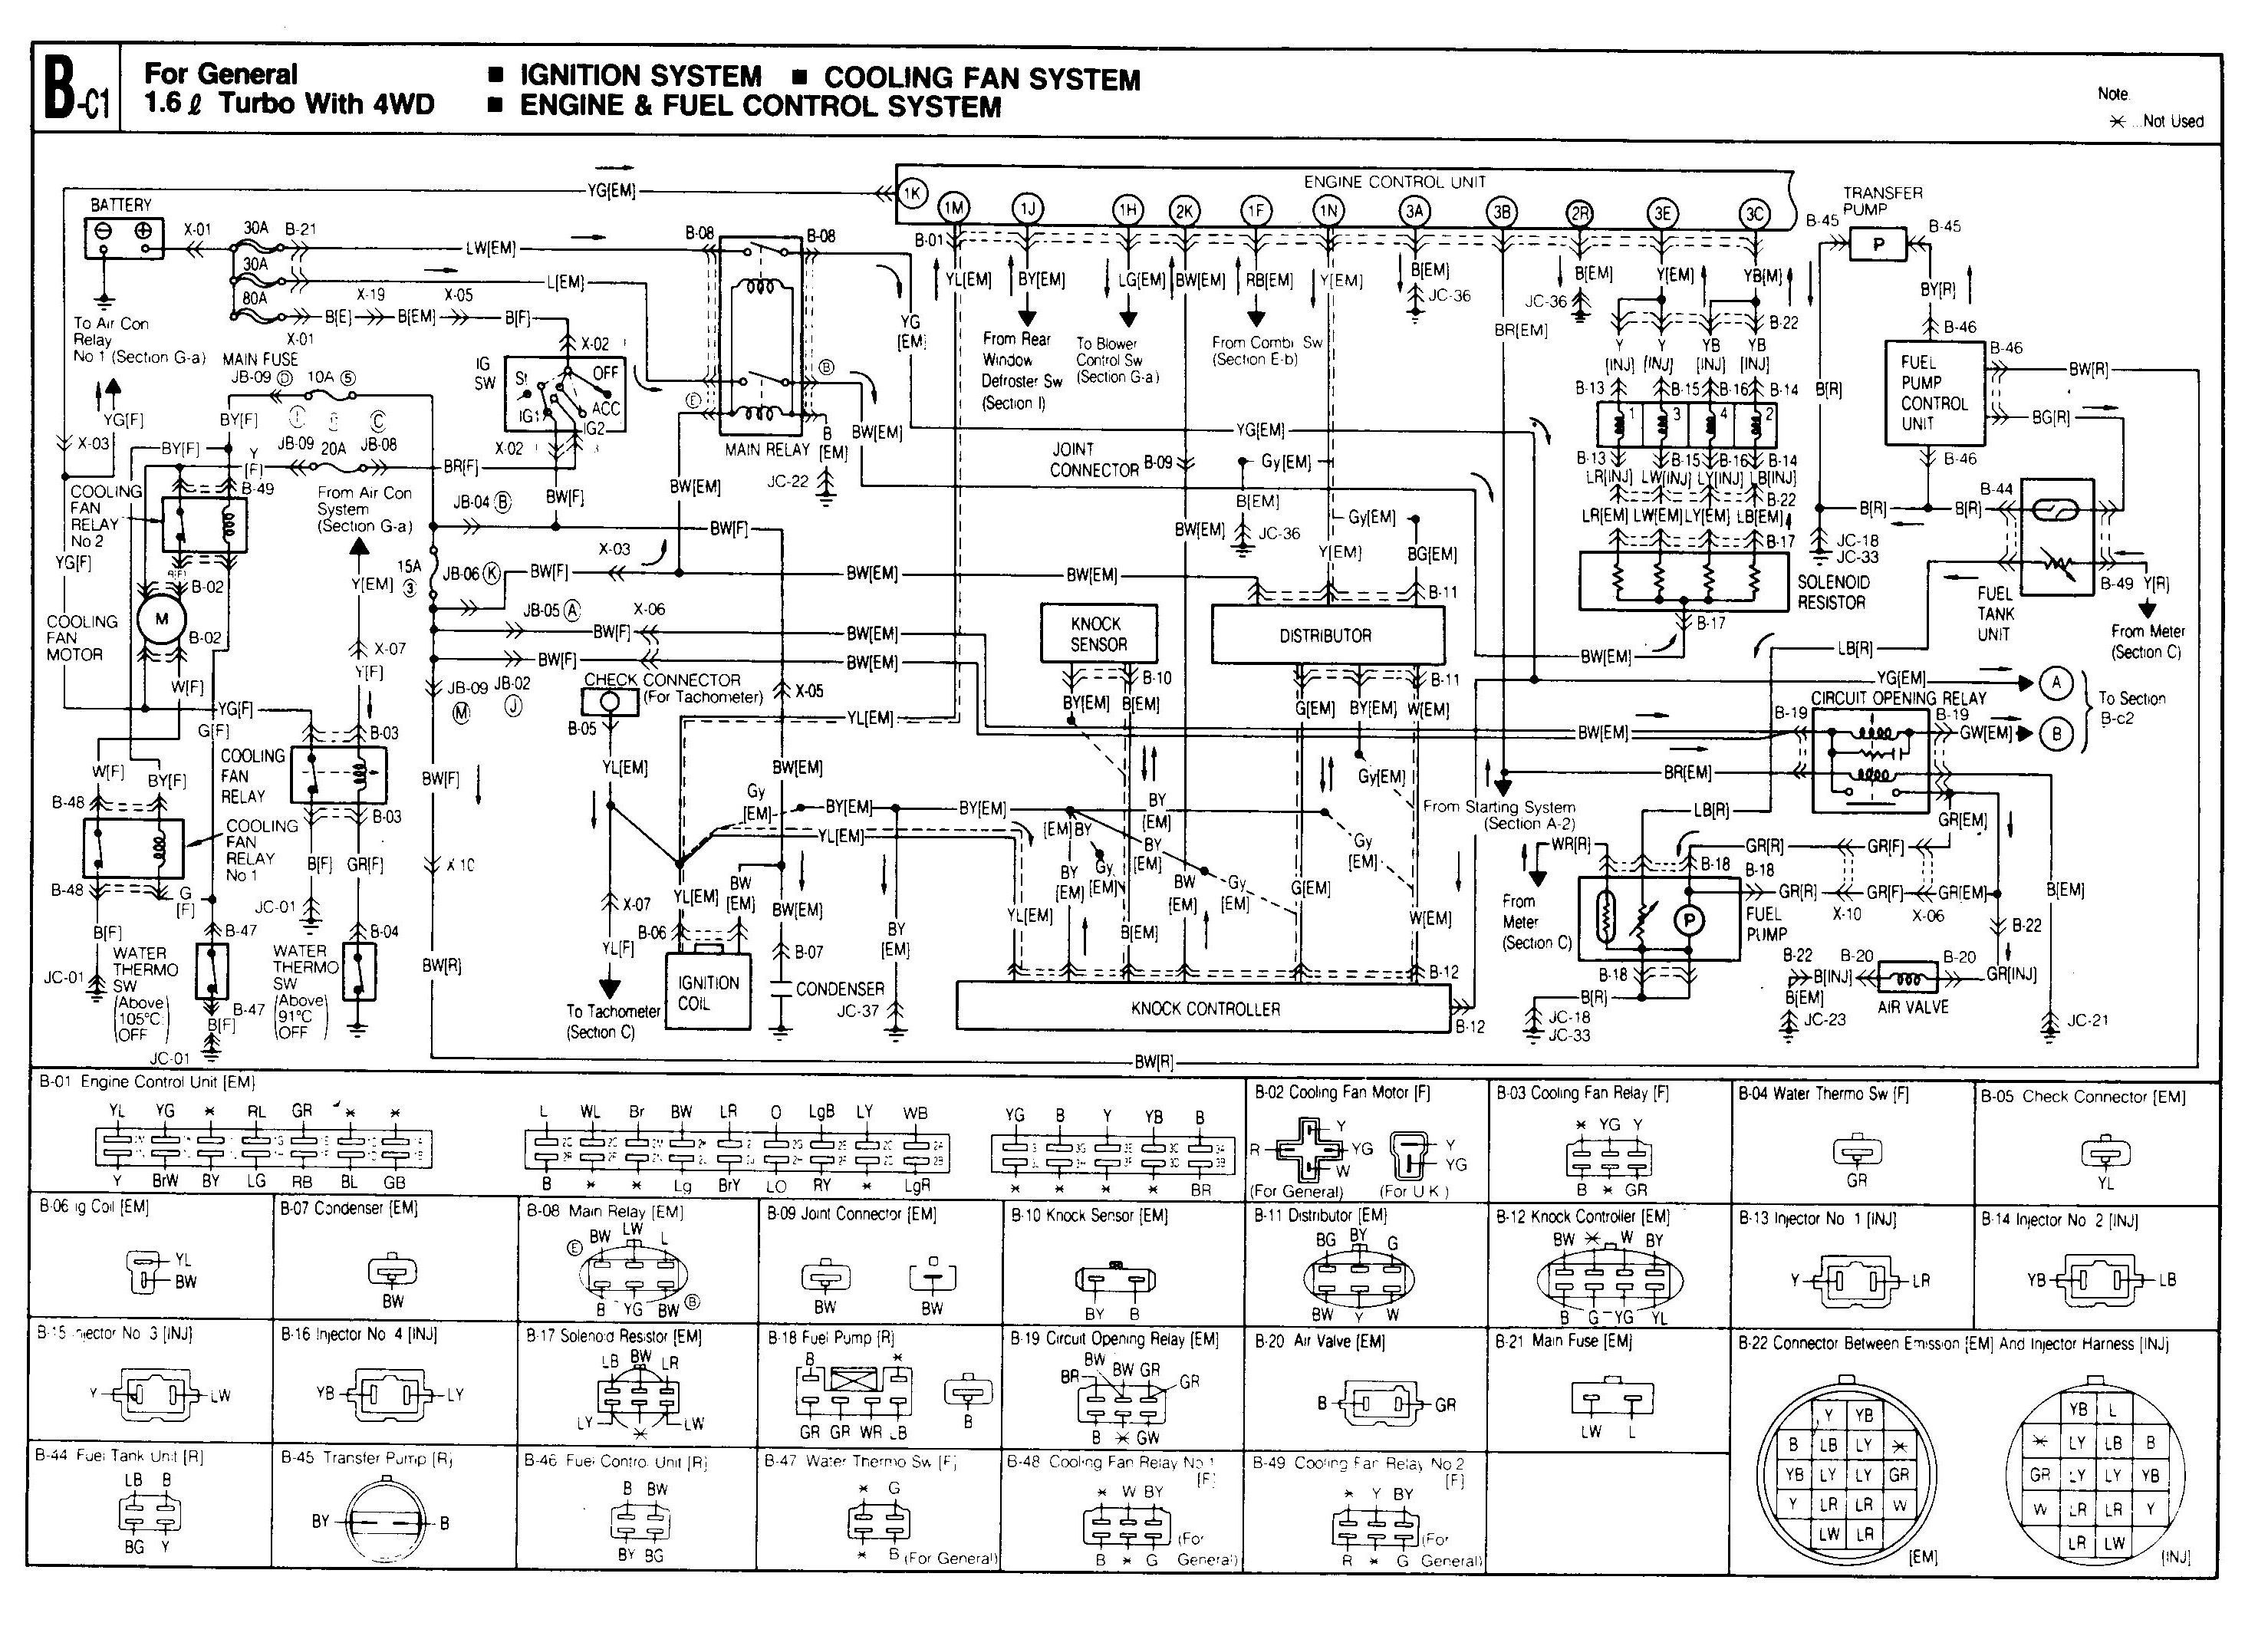 2002 mazda protege engine diagram 1989 mazda 323 wiring